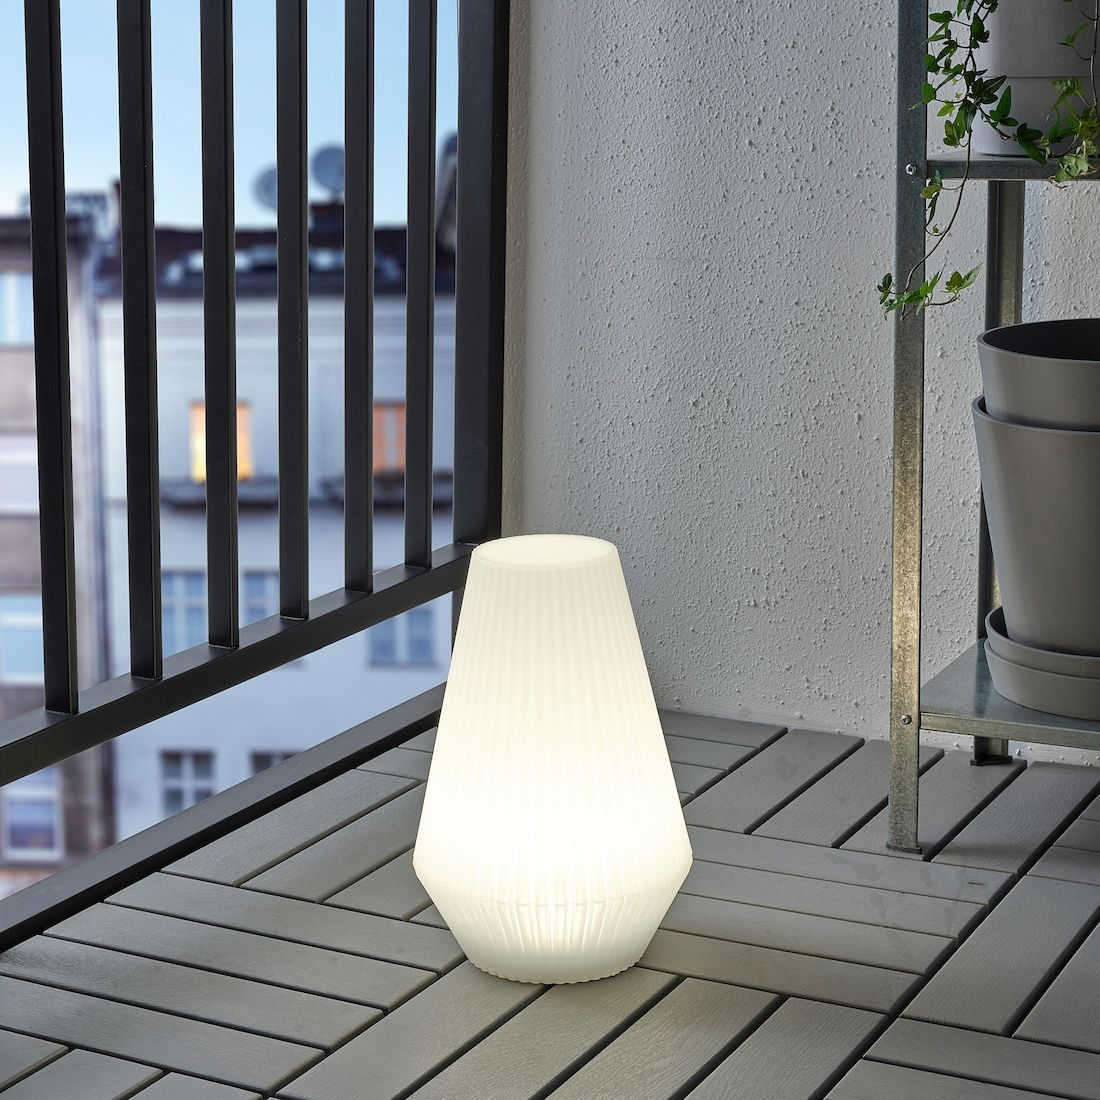 Solvinden Led Solar Powered Floor Lamp Outdoor Plastic White Ikea In 2020 Outdoor Solar Lamps Outdoor Lamp Solar Powered Lights